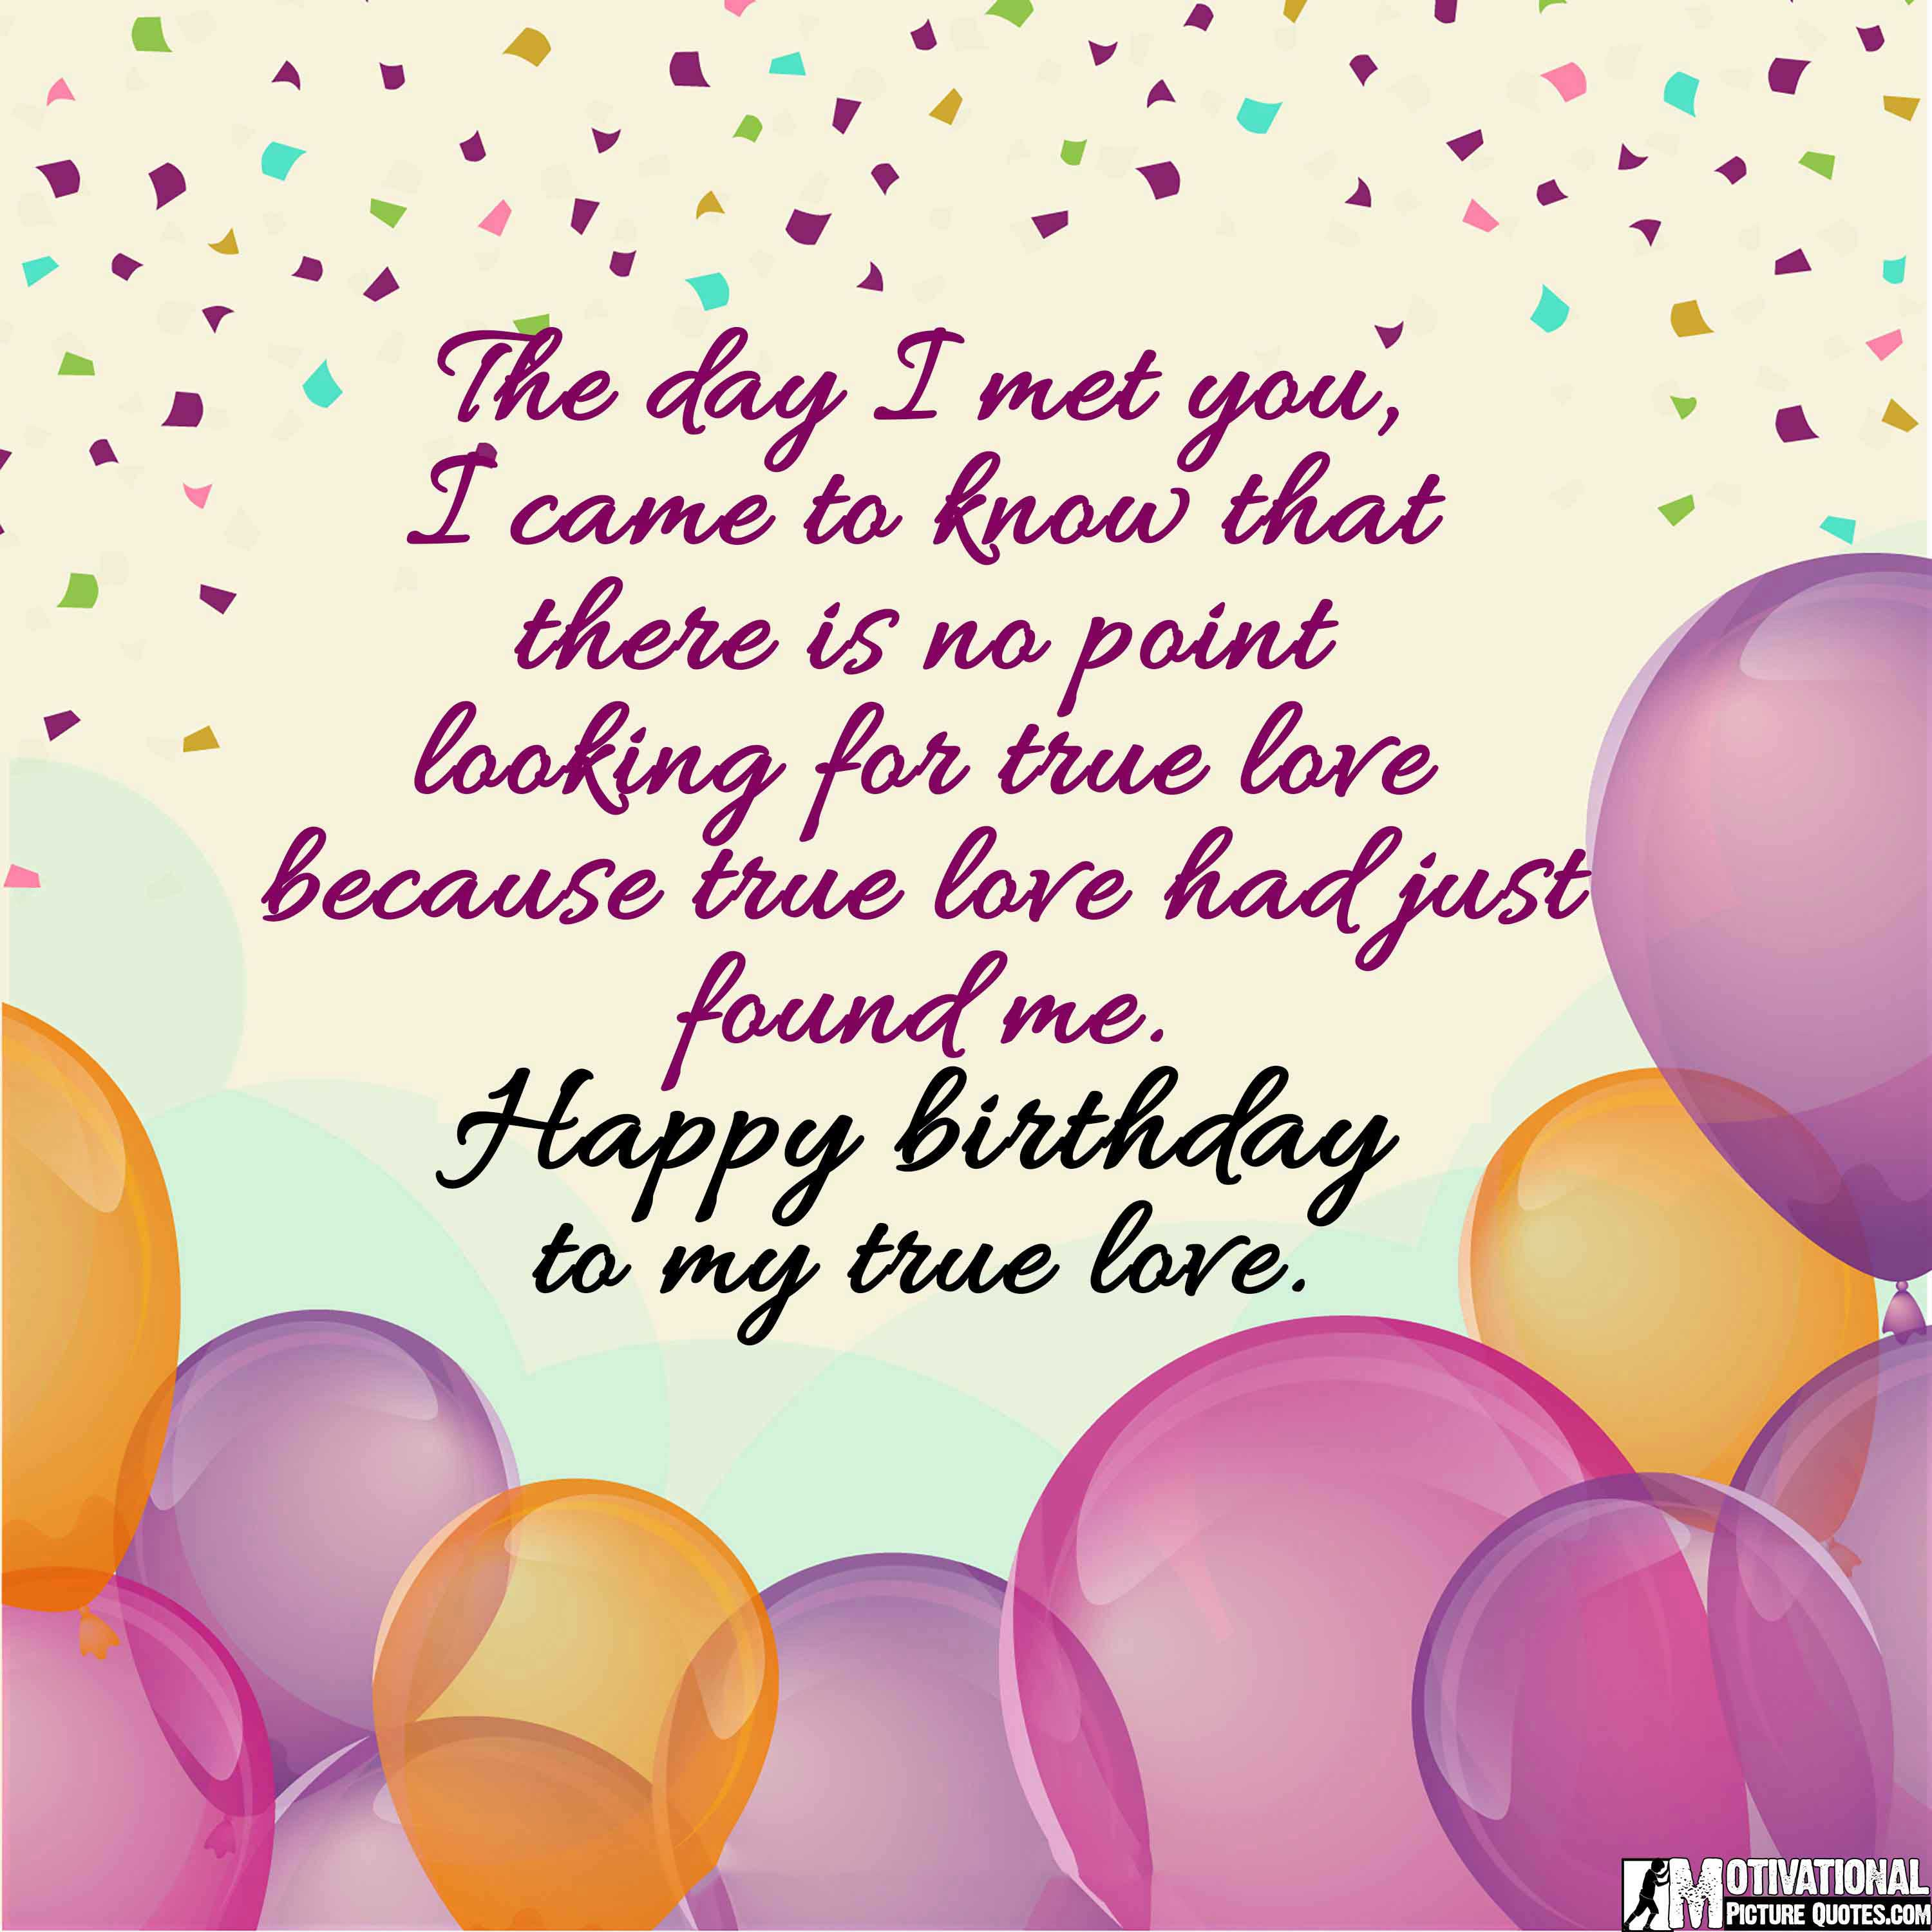 Happy Birthday Quotes For Her: 35+ Inspirational Birthday Quotes Images